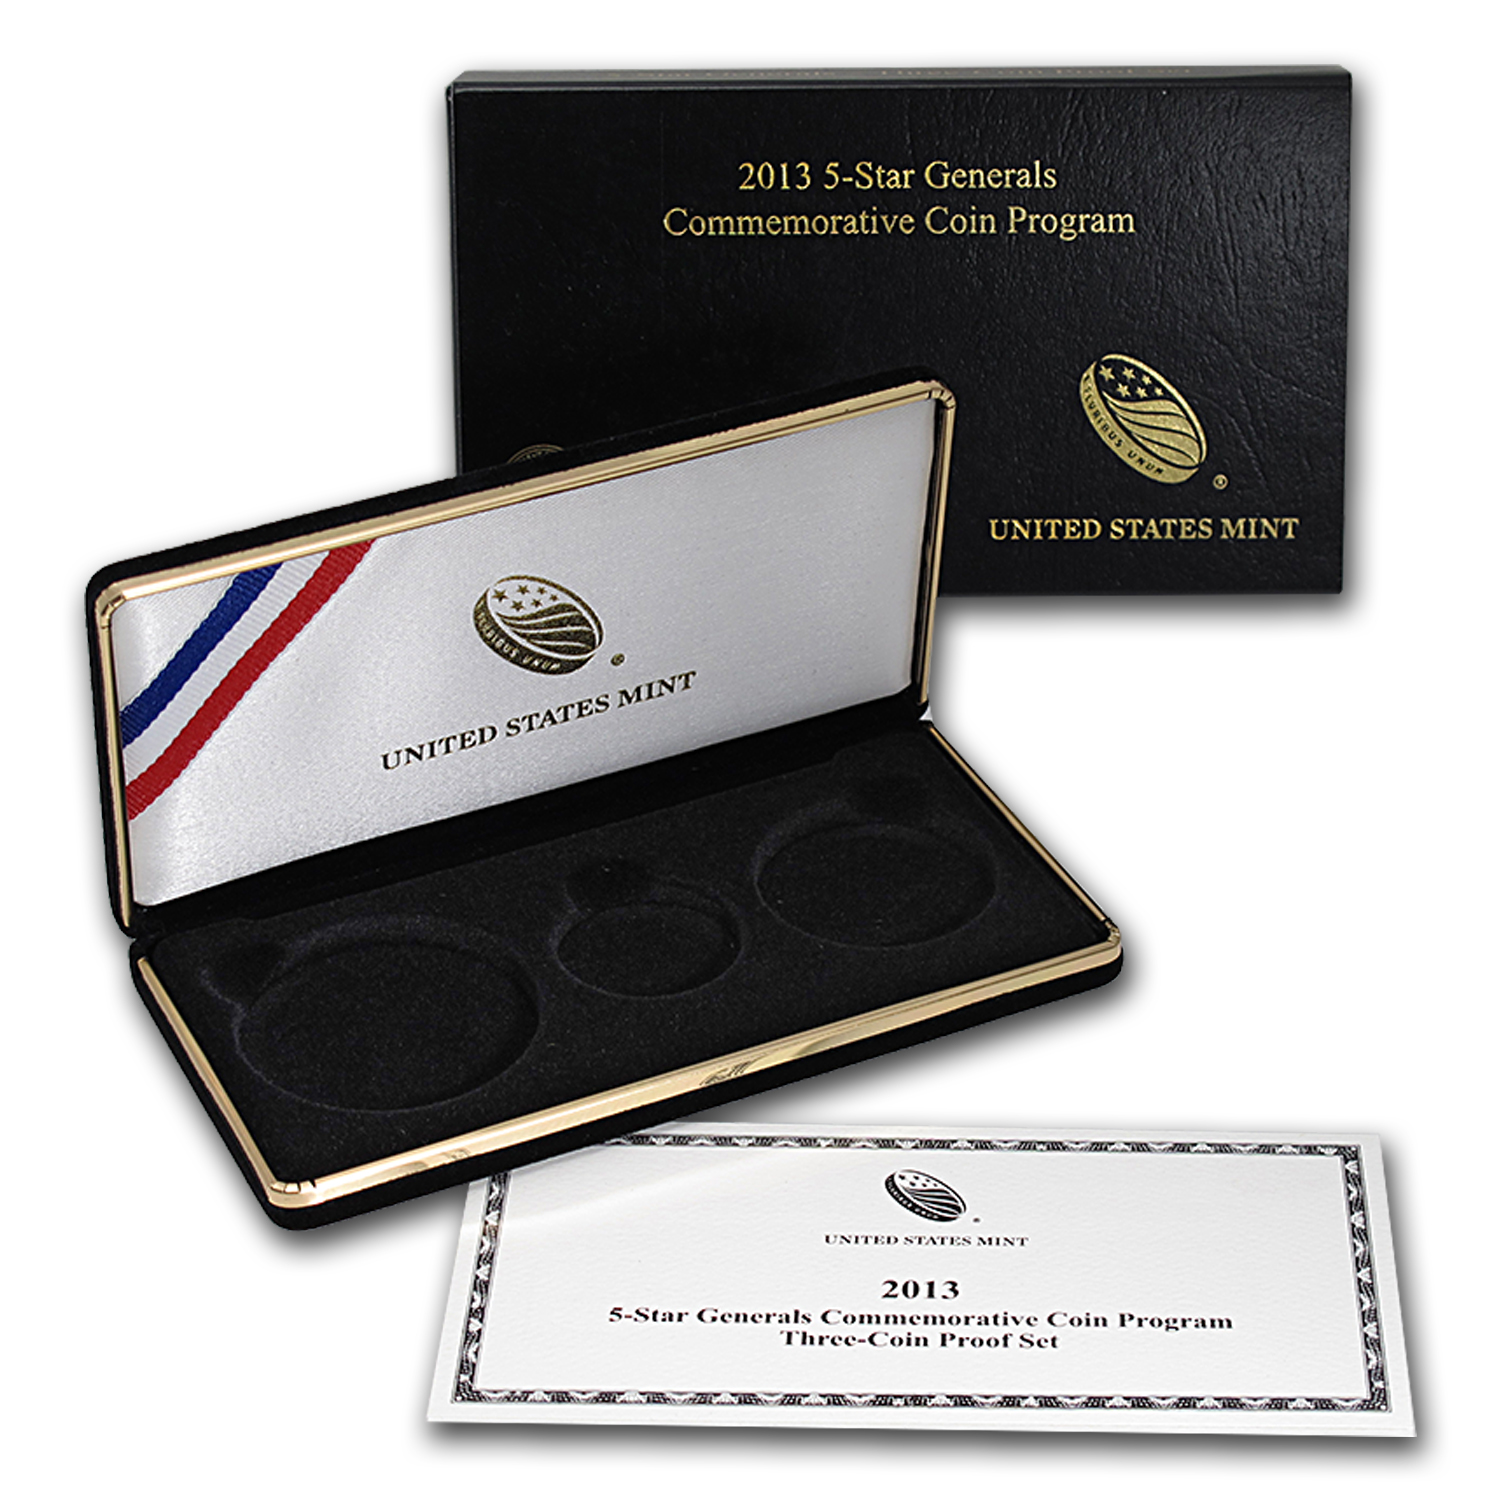 OEM Box & COA - 2013 U.S. Mint 5 Star General Gold 3 Coin PF Set